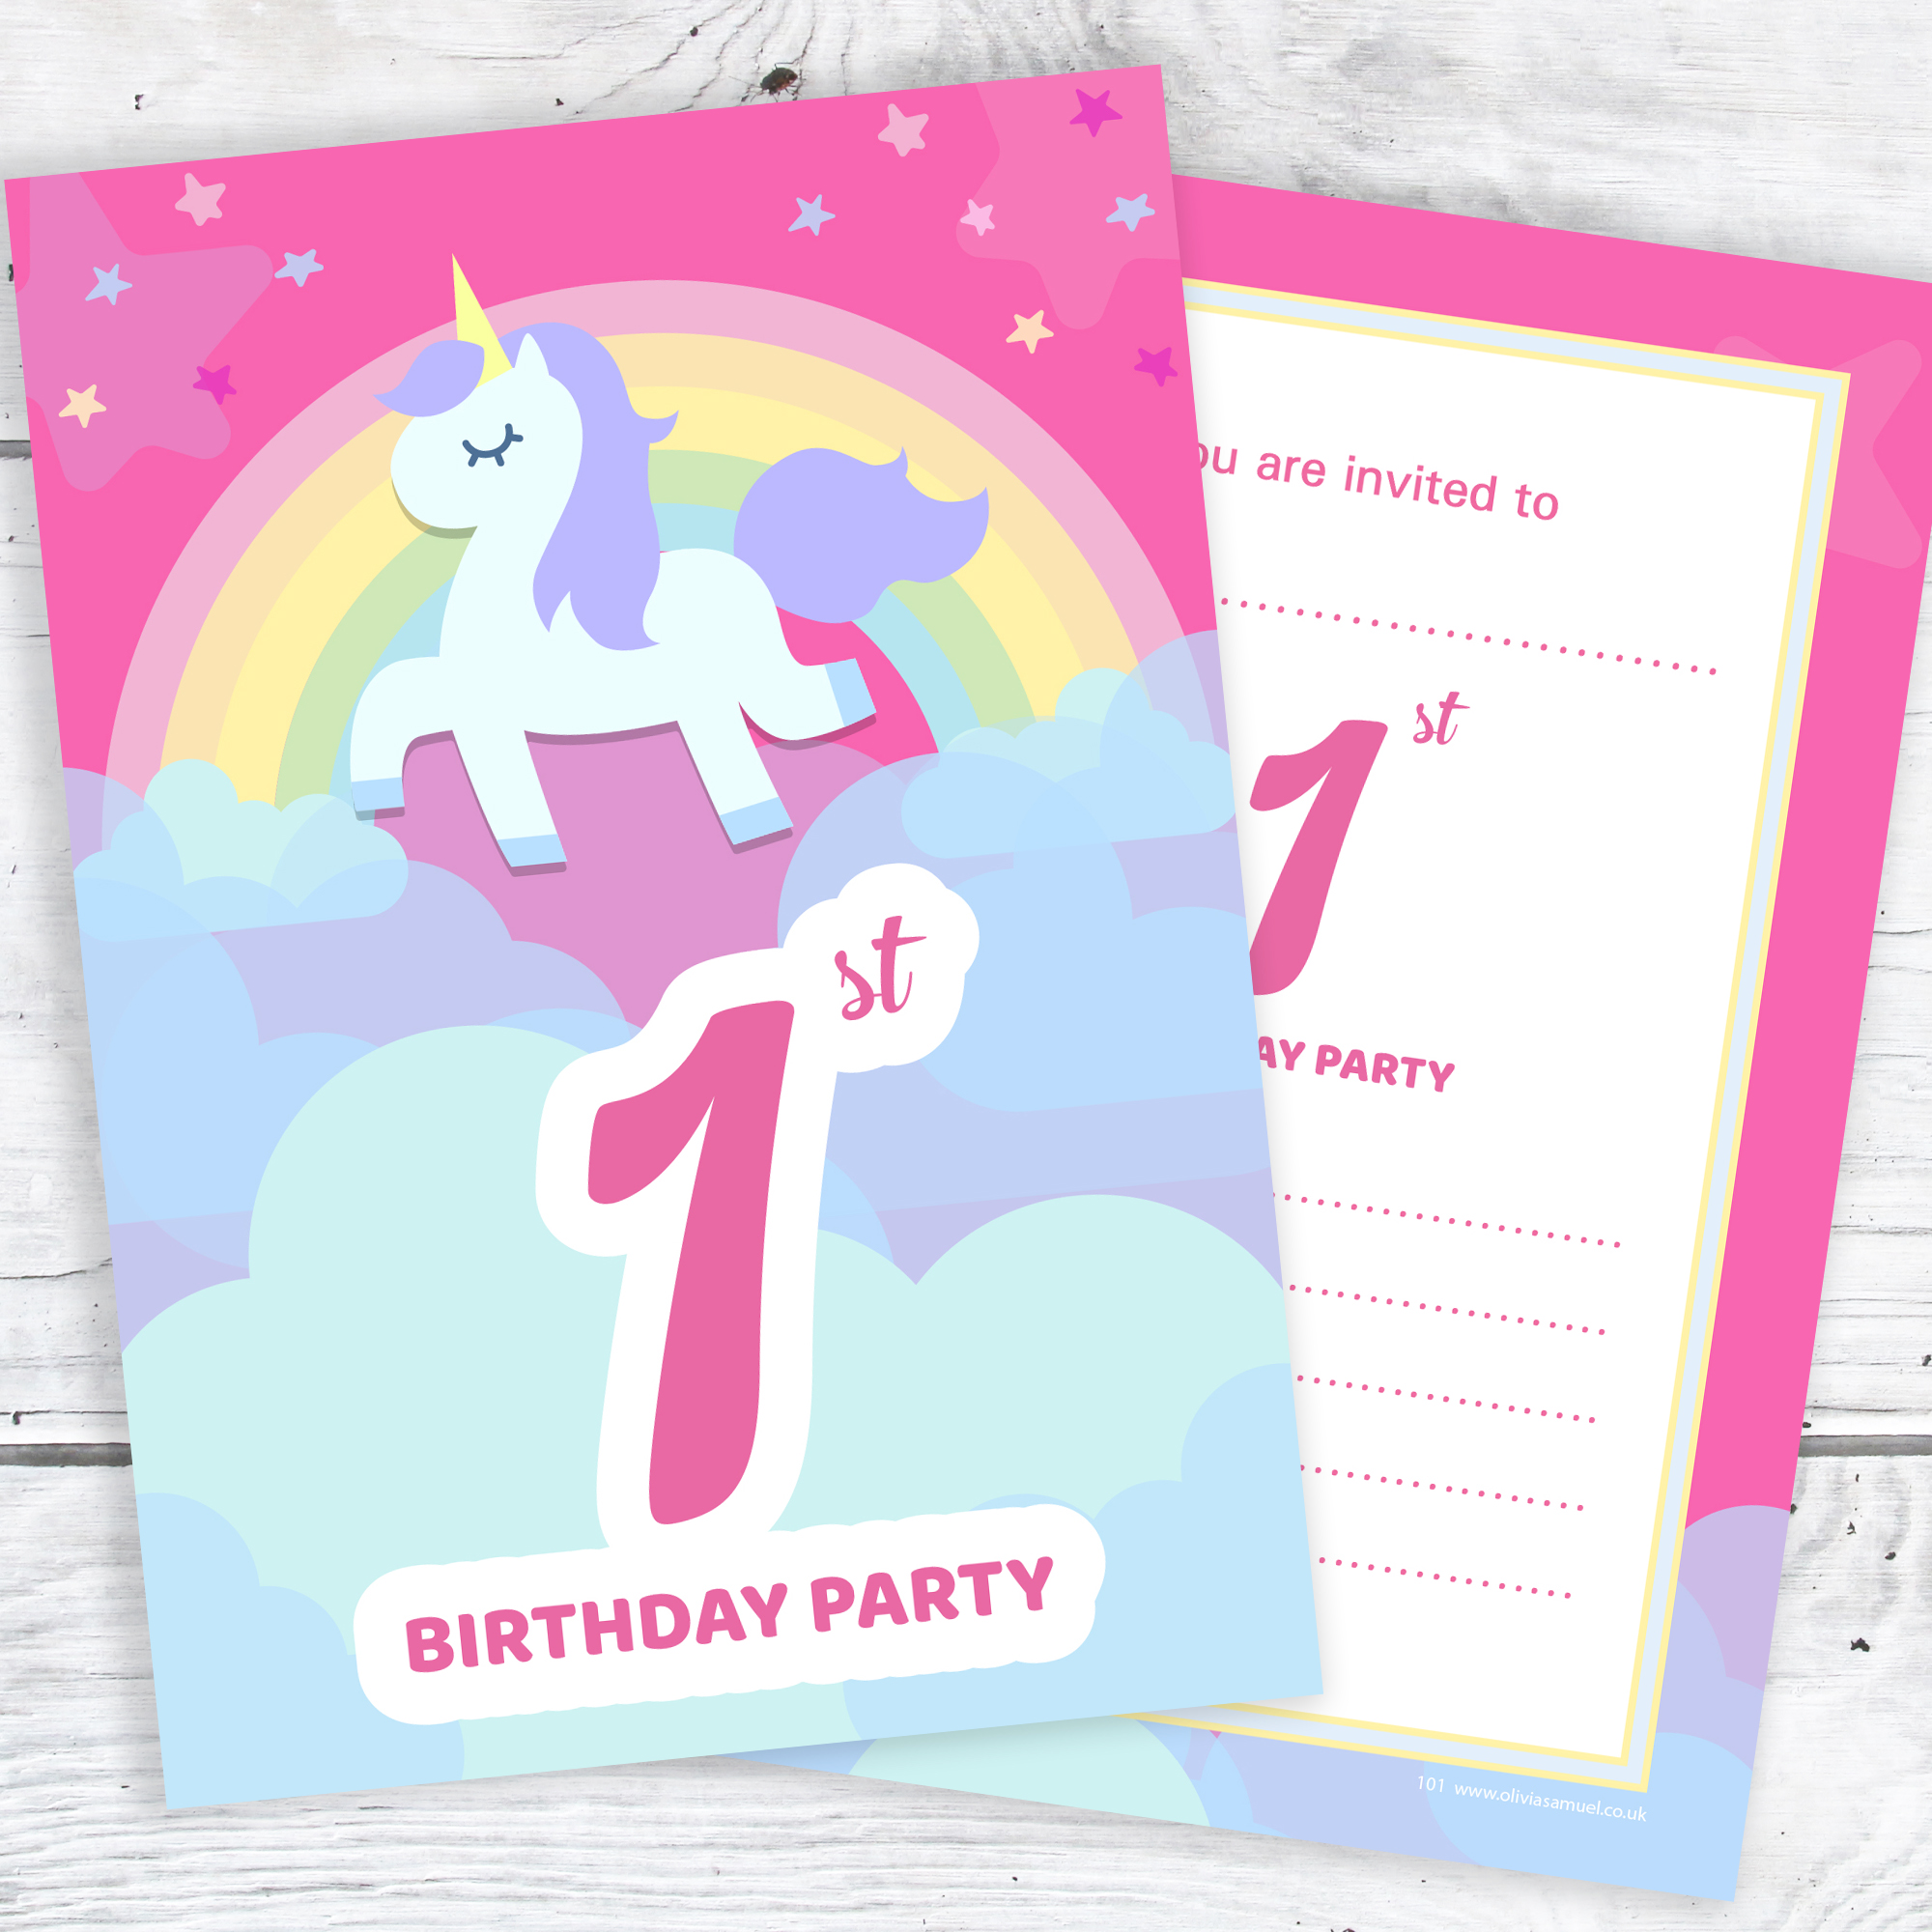 1st Birthday Party Invitations Unicorn Rainbow Pink Invites Ready To Write With Envelopes Pack 10